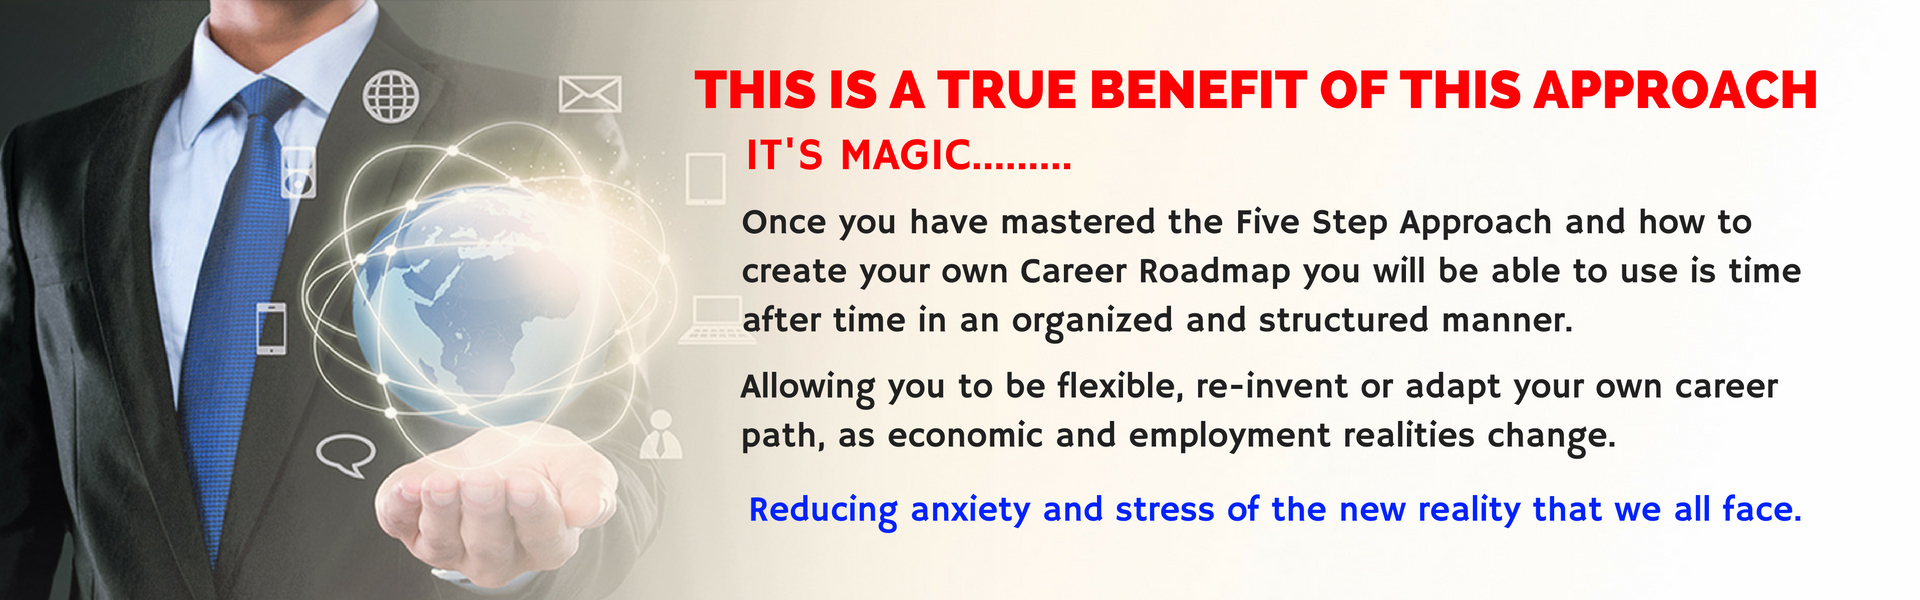 THIS-IS-A-TRUE-BENEFIT-OF-THIS-APPROACH-(3)